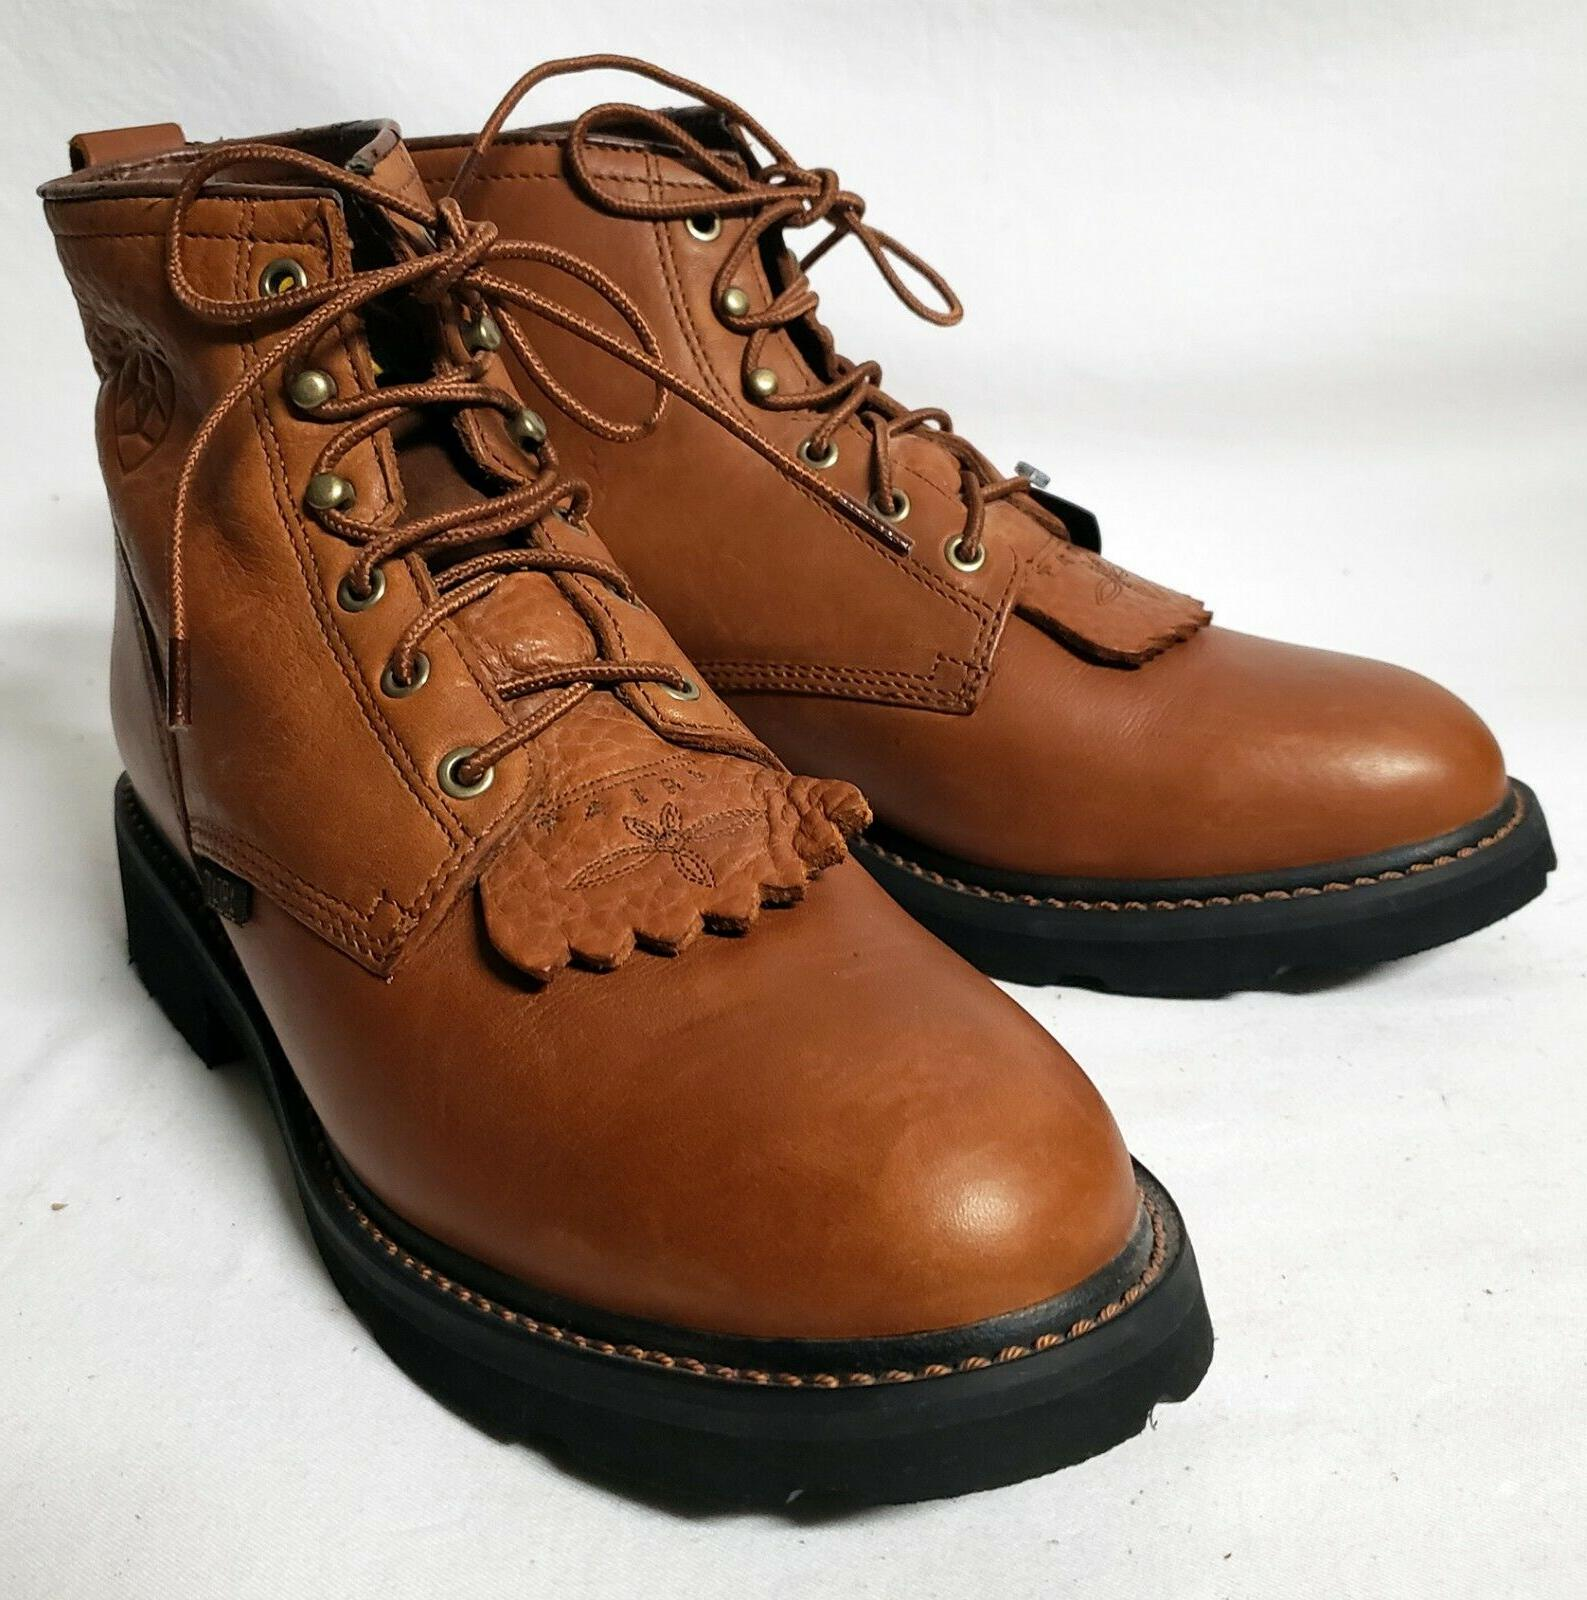 Ariat Lacer Cascade Boots Sunshine 31080 NEW